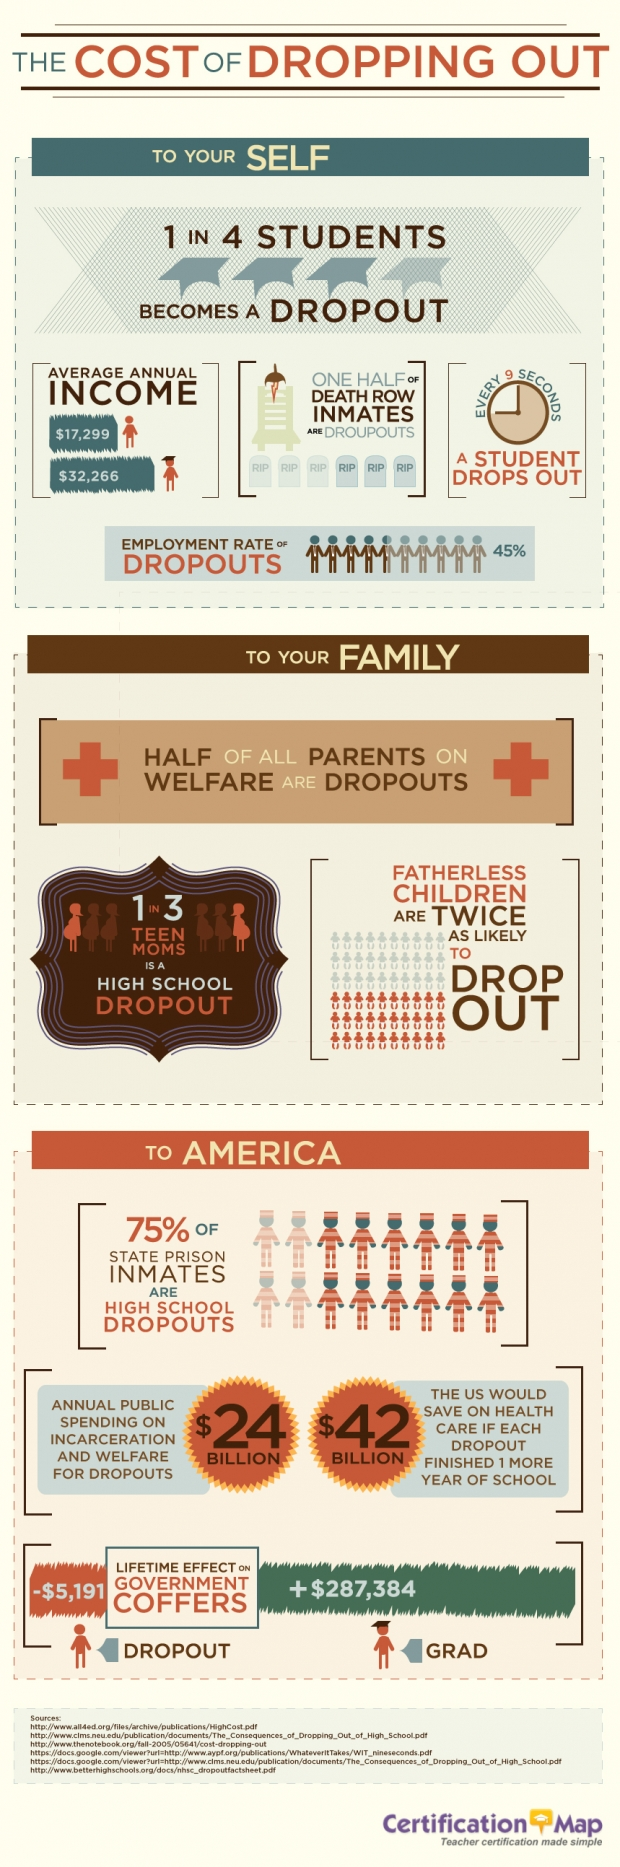 The Cost of Dropping Out - Infographic